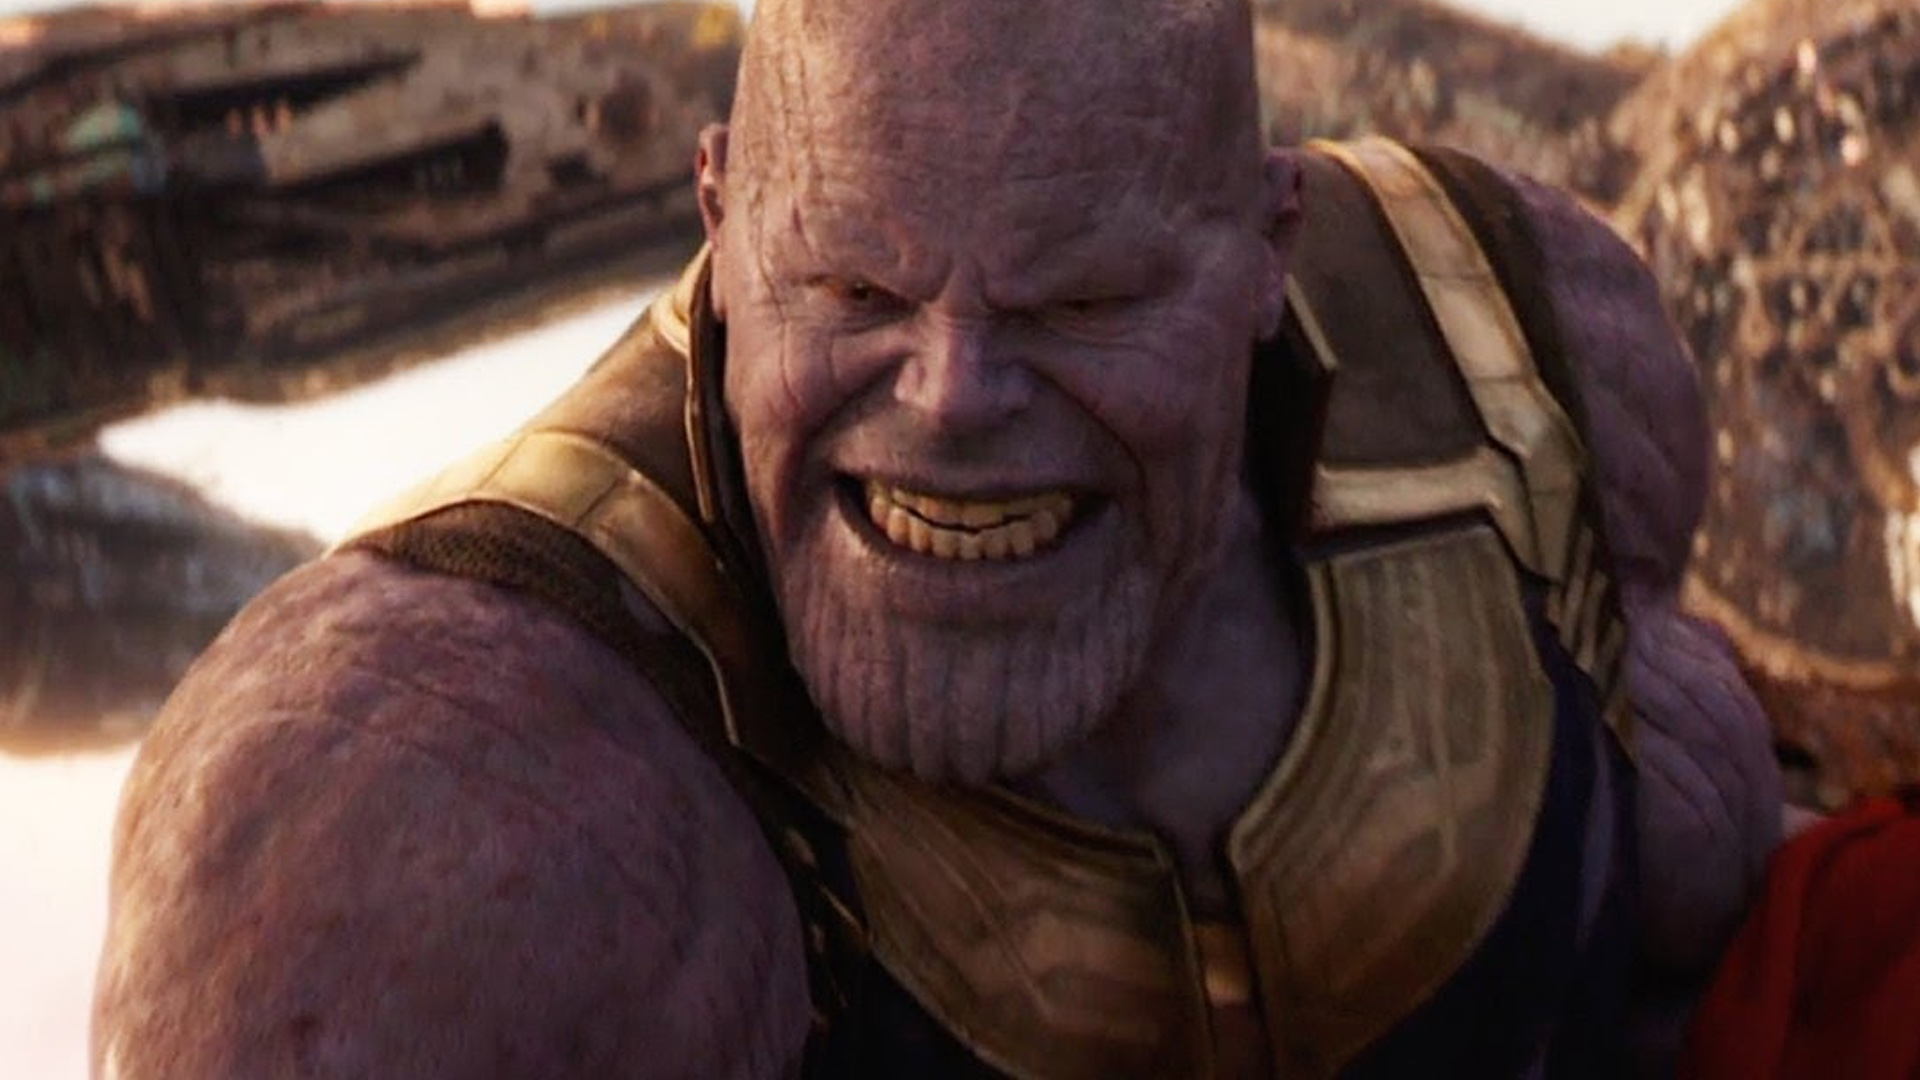 marvel-studios-president-kevin-feige-explains-that-thanos-has-to-be-the-greatest-villain-in-the-mcu-social.jpg